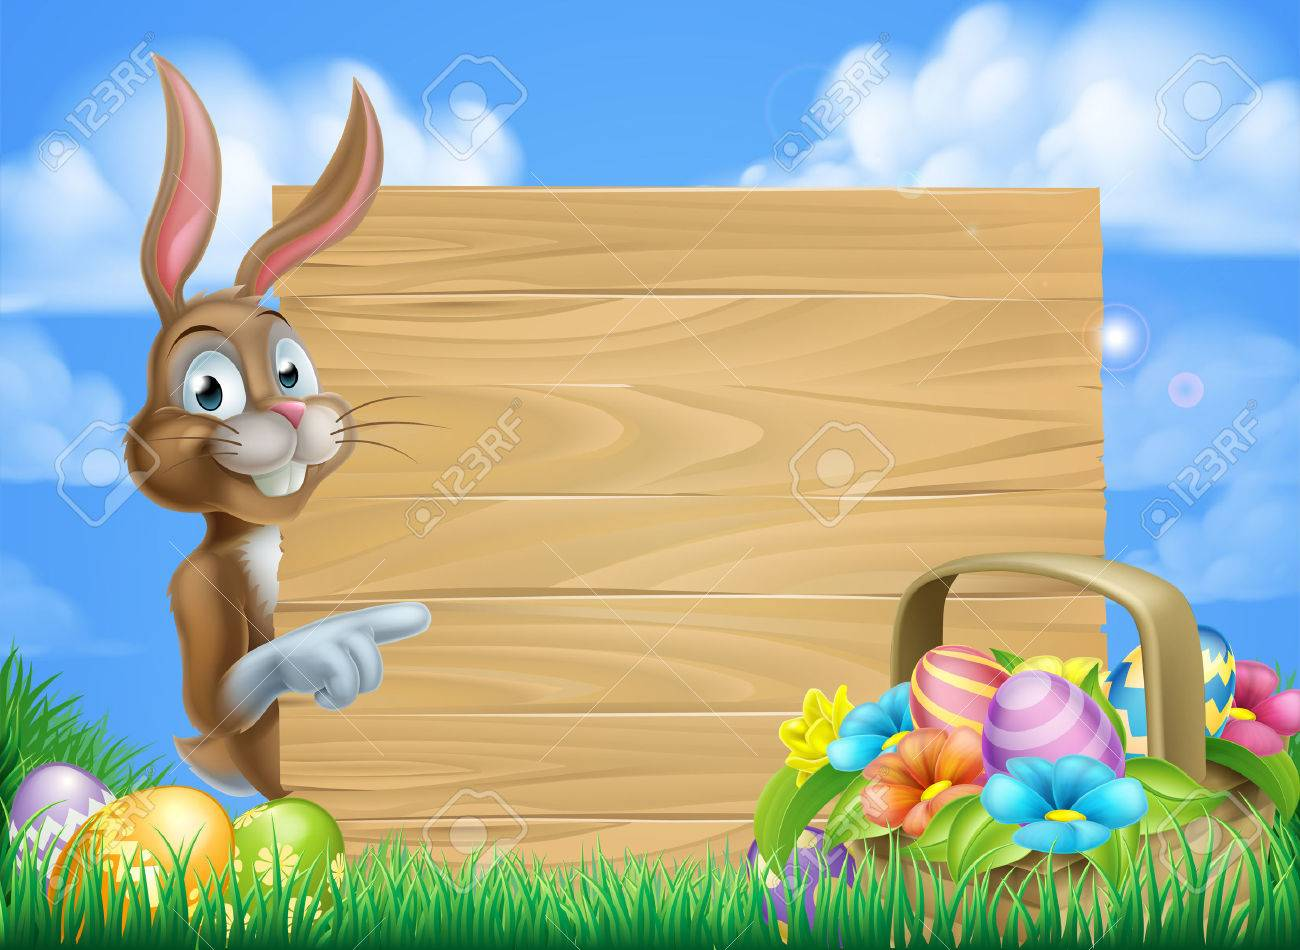 Cartoon Easter Bunny And Easter Basket Full Of Easter Eggs 1300x950